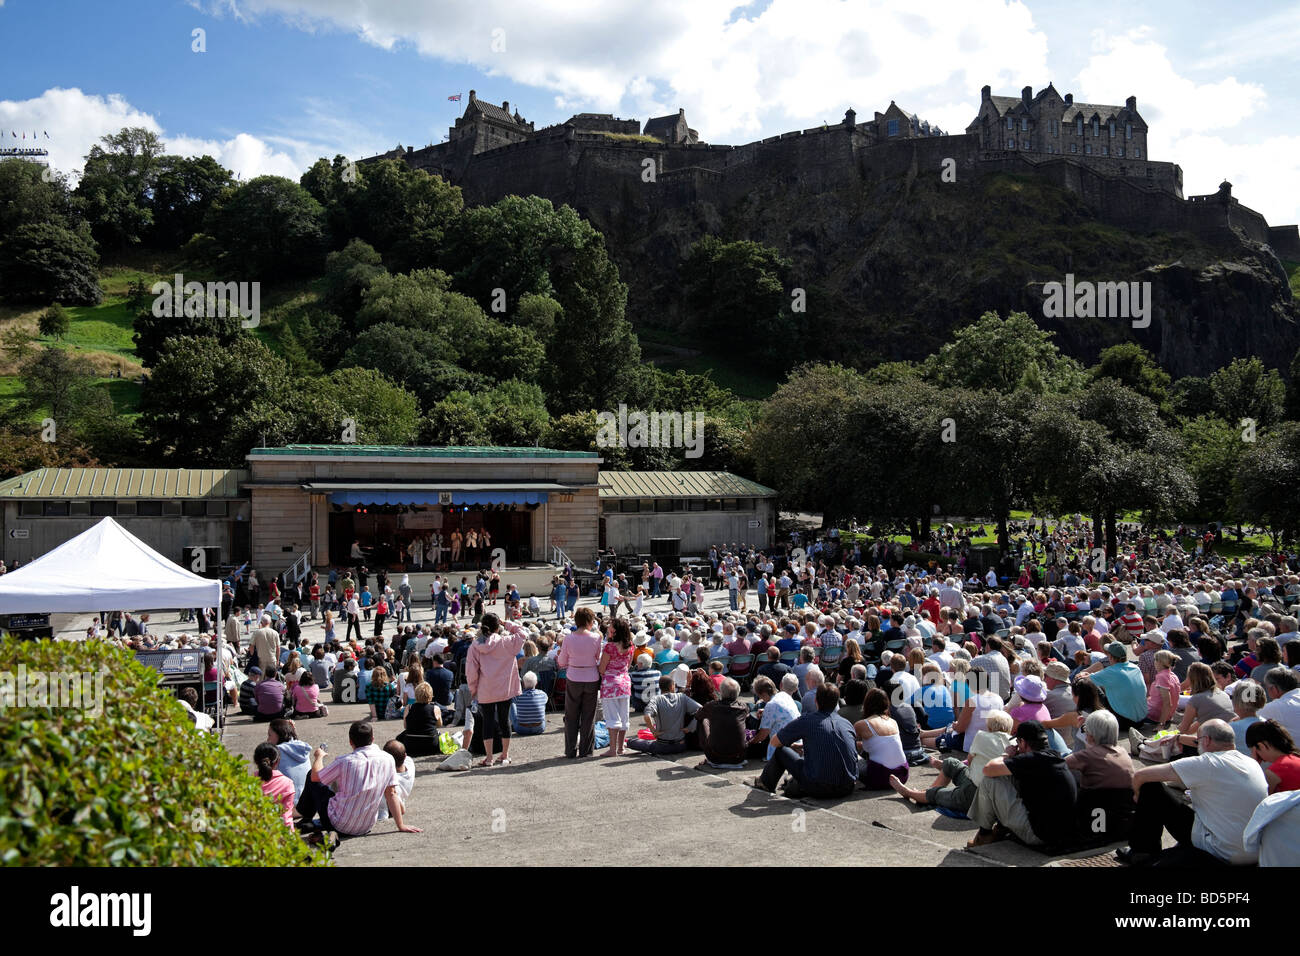 Edinburgh audience at Ross Bandstand with Castle in background during the annual Edinburgh Jazz Festival, Scotland, - Stock Image